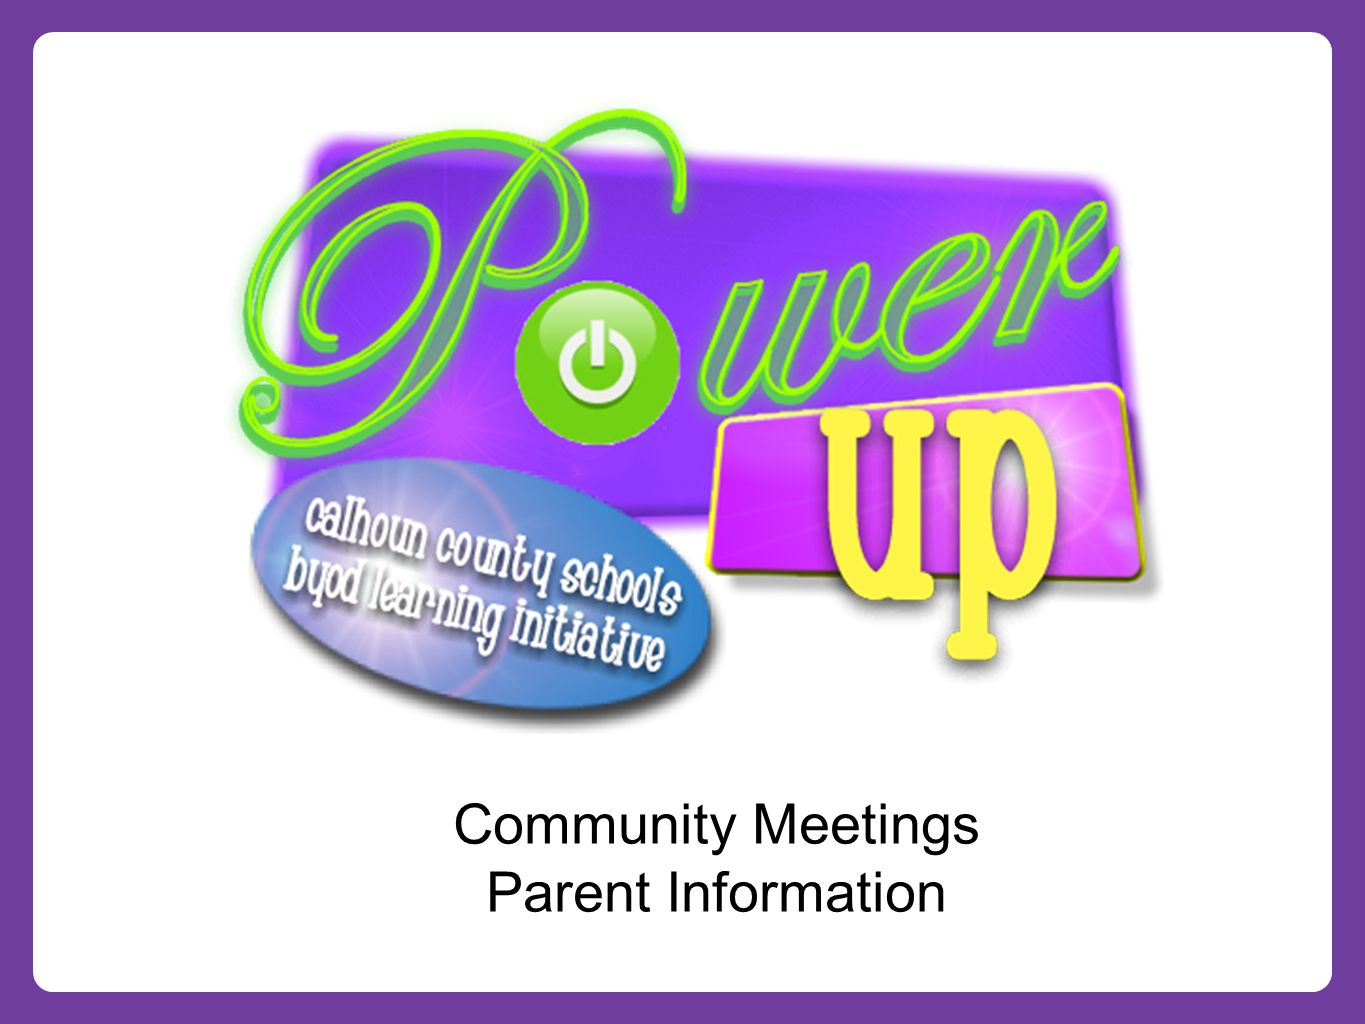 Community Meetings Parent Information